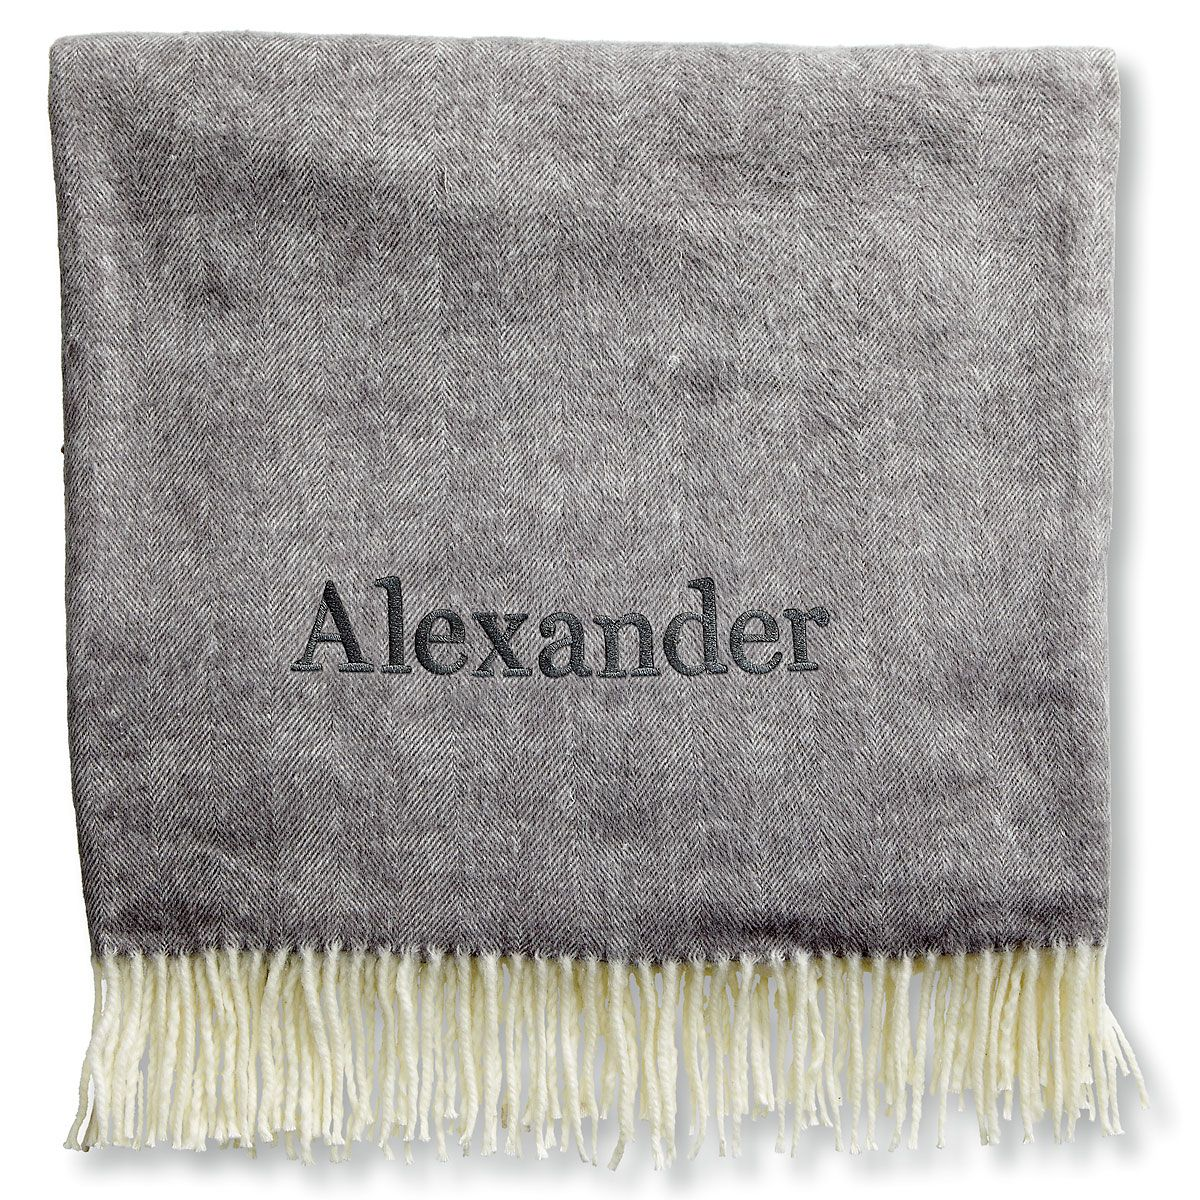 Personalized Blanket with Name-Gray-816104B